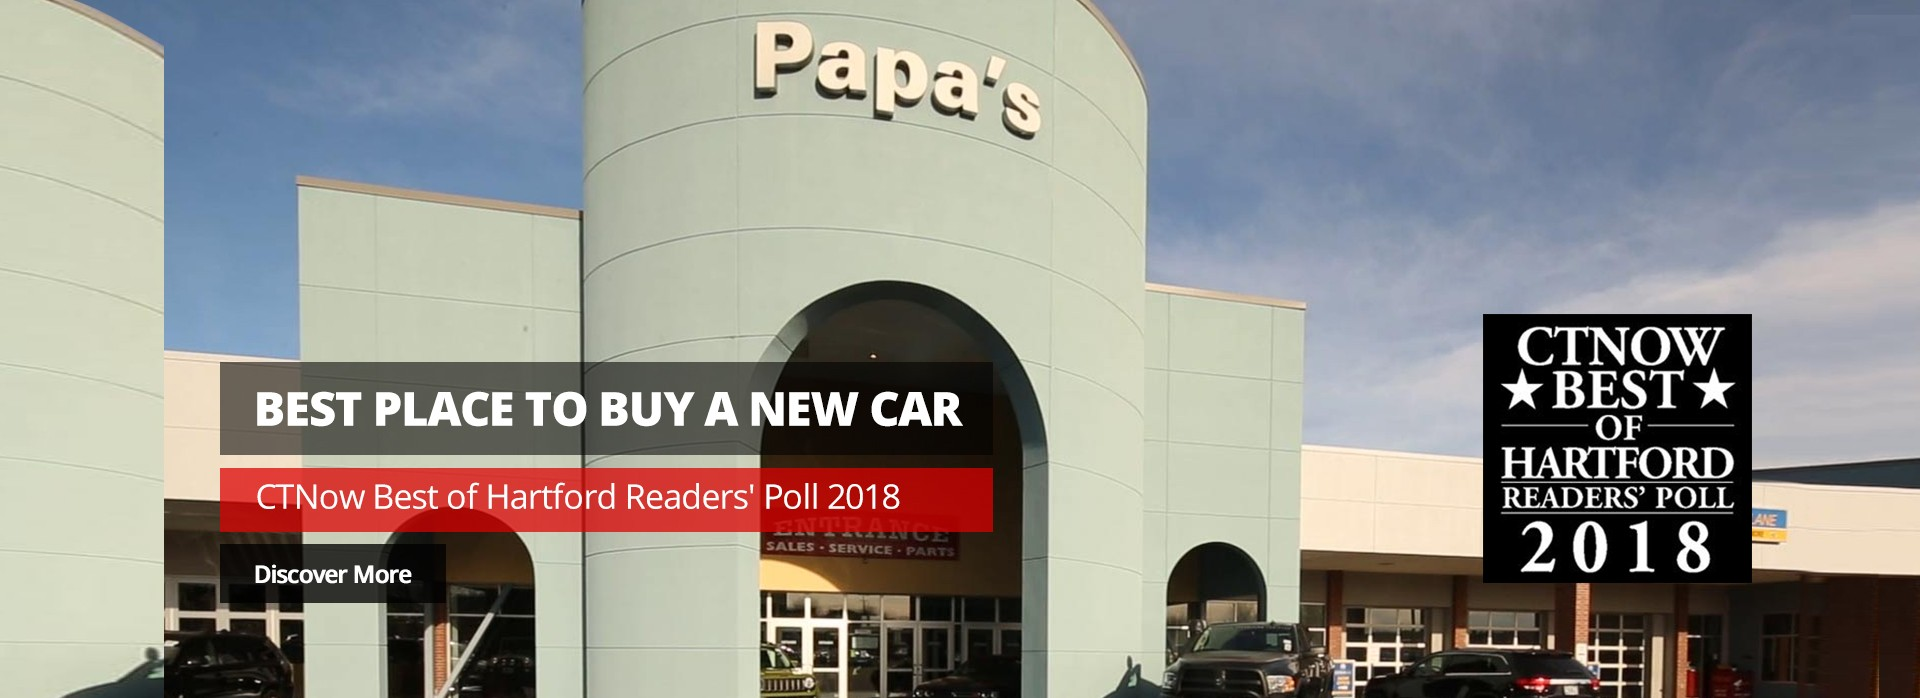 Best place to buy a newcar - CTNow Best of Hartford Readers' Poll 2018. Discover More